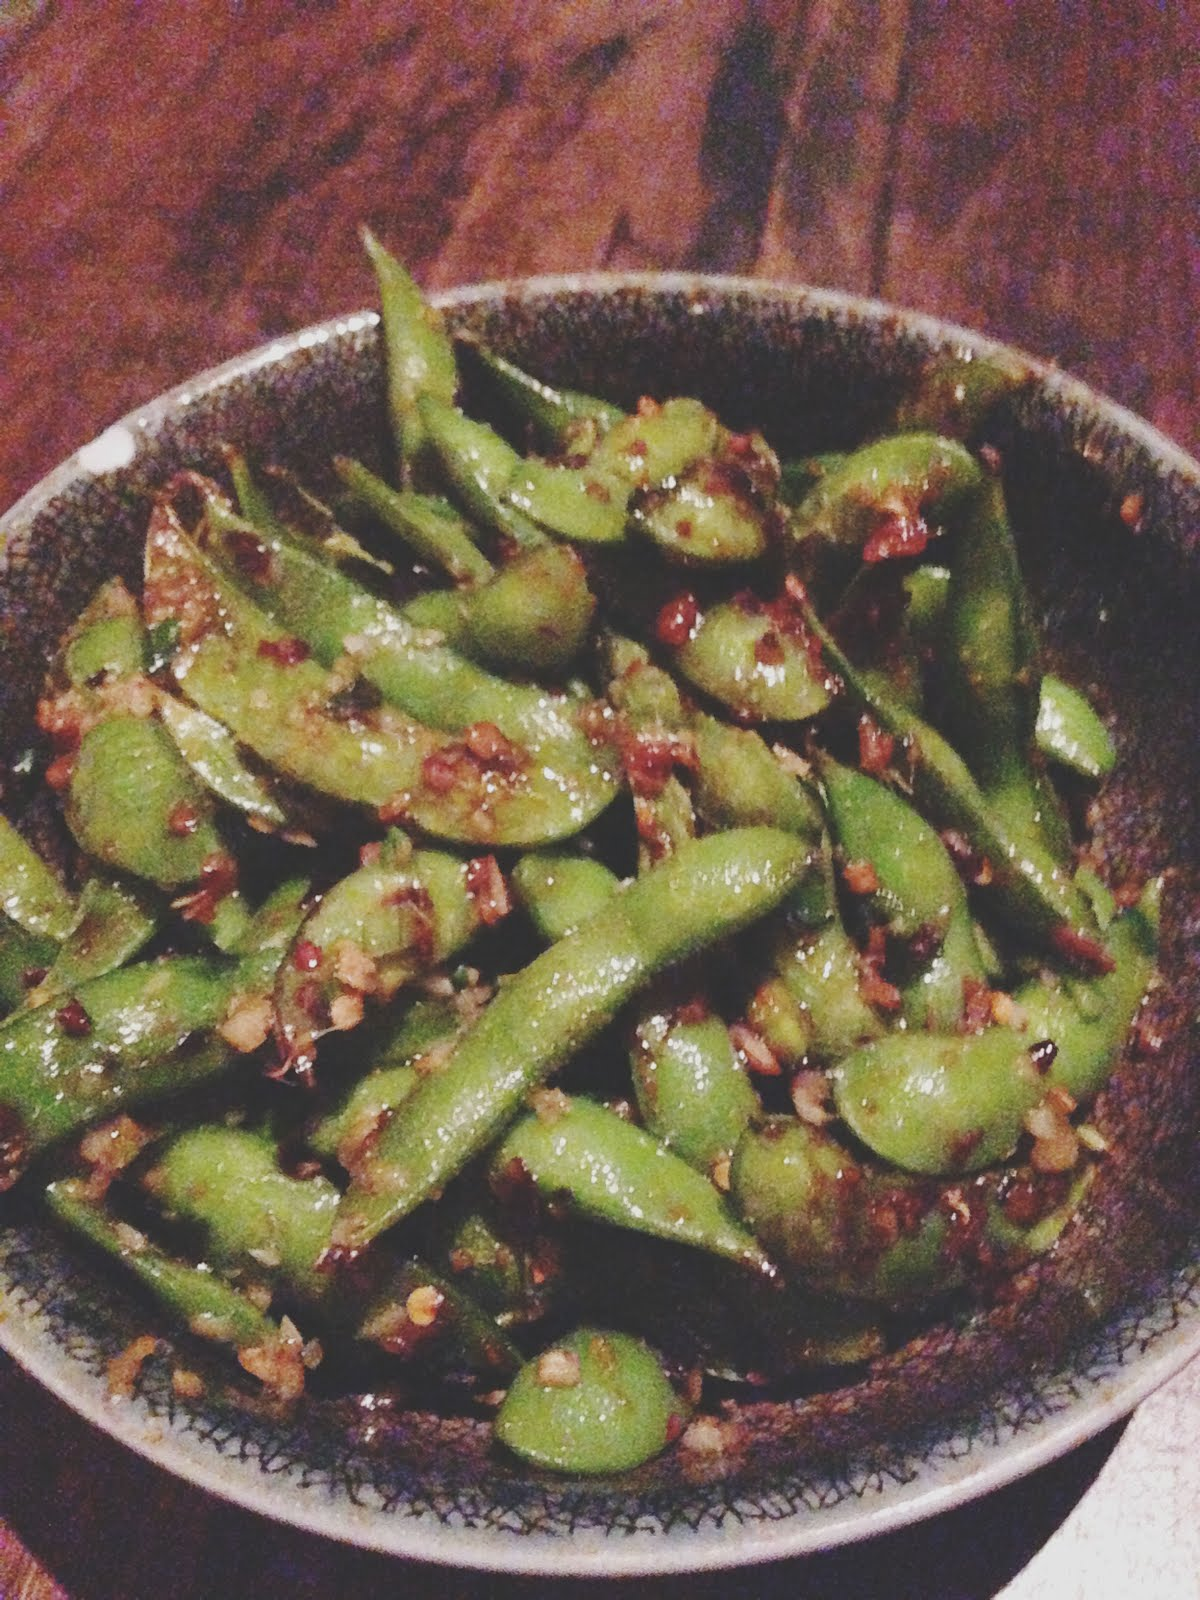 izakaya houston restaurants food japanese edamame 04